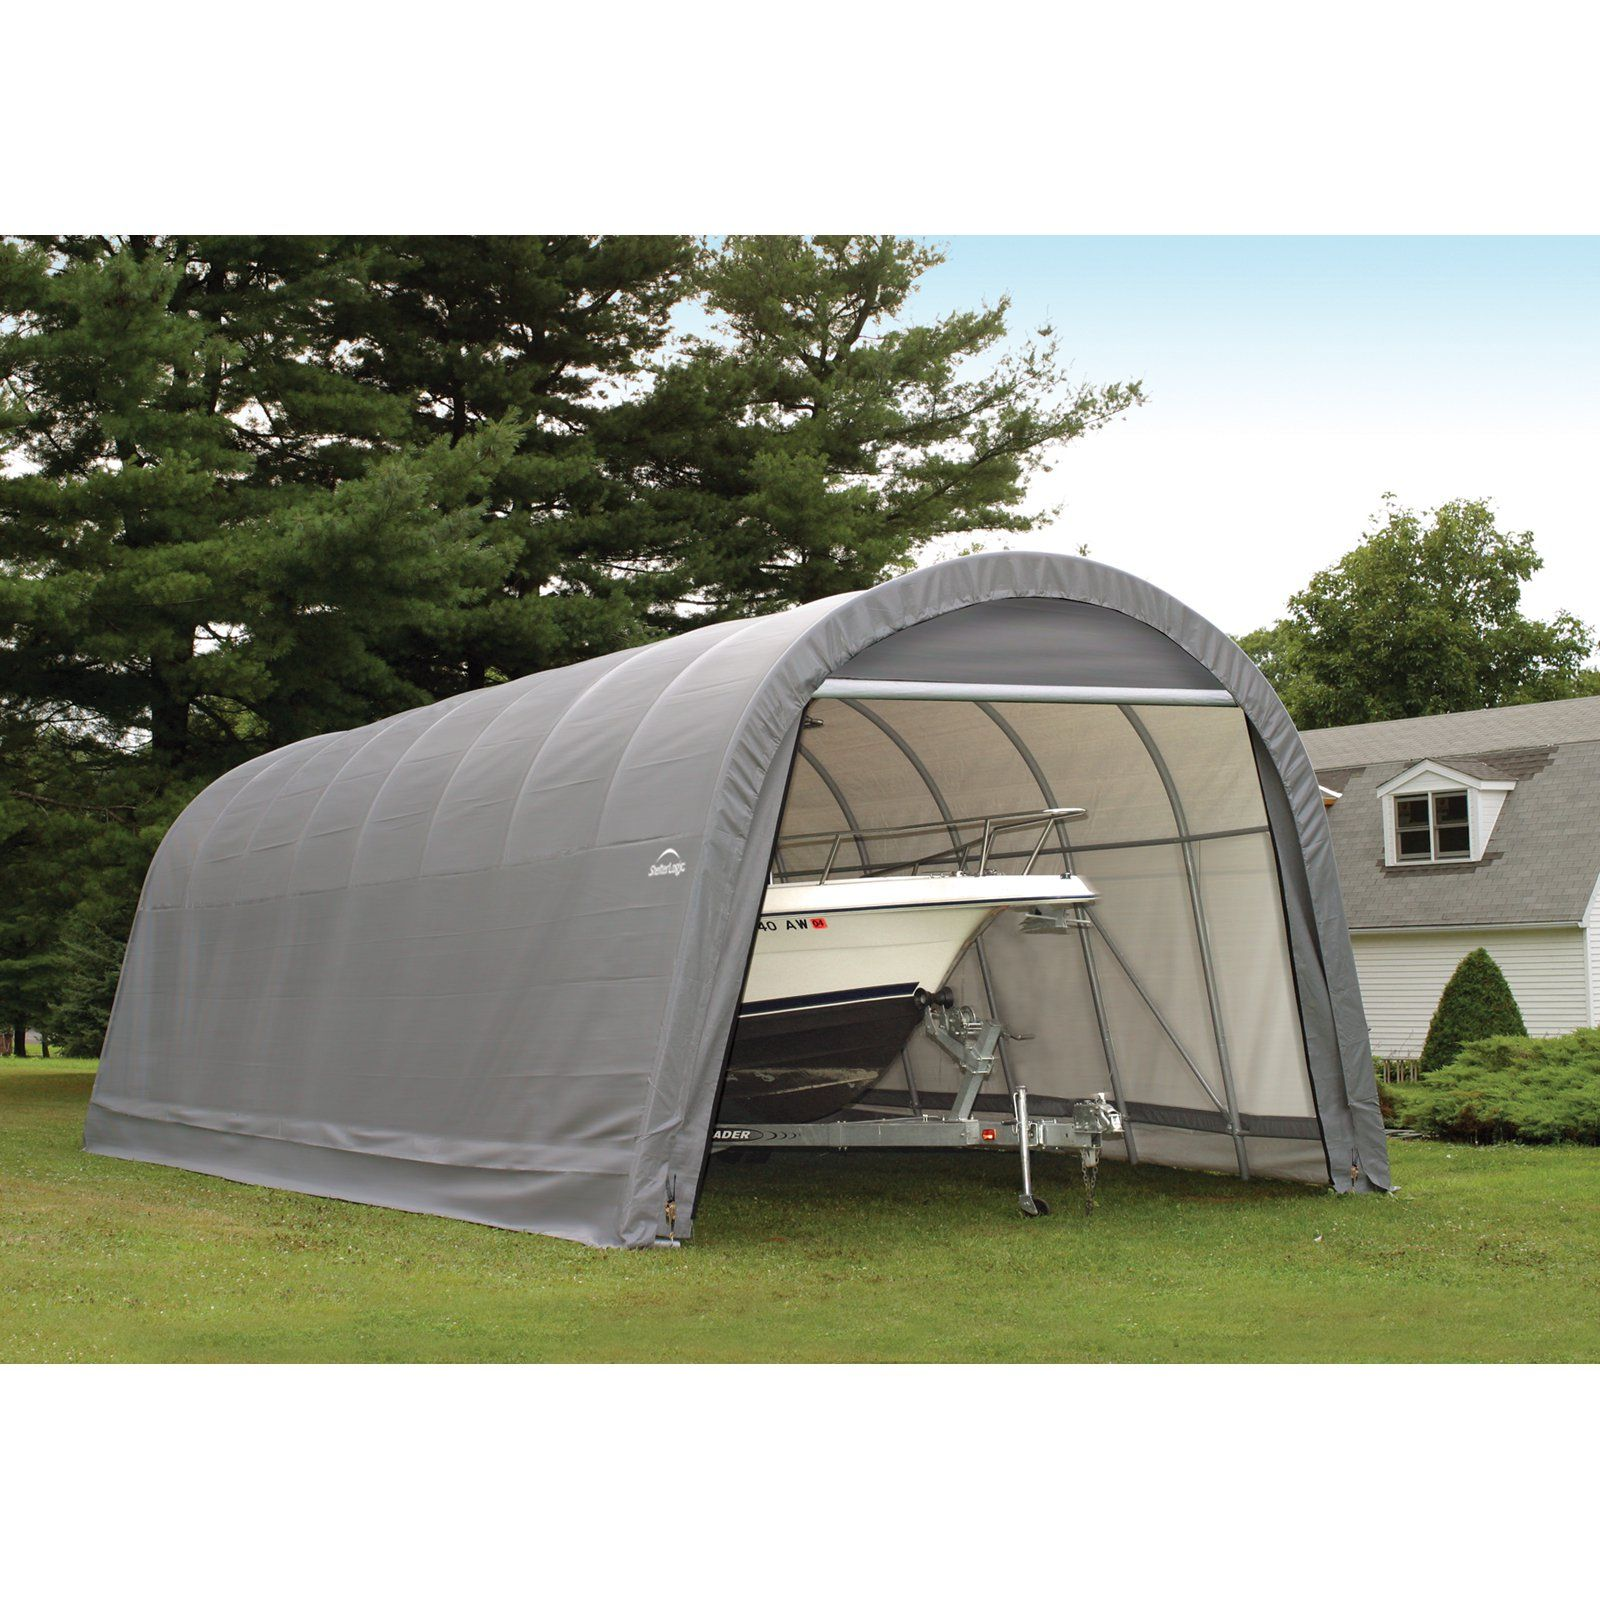 ShelterLogic RoundTop 15 x 24 x 12 ft. Round Frame Garage